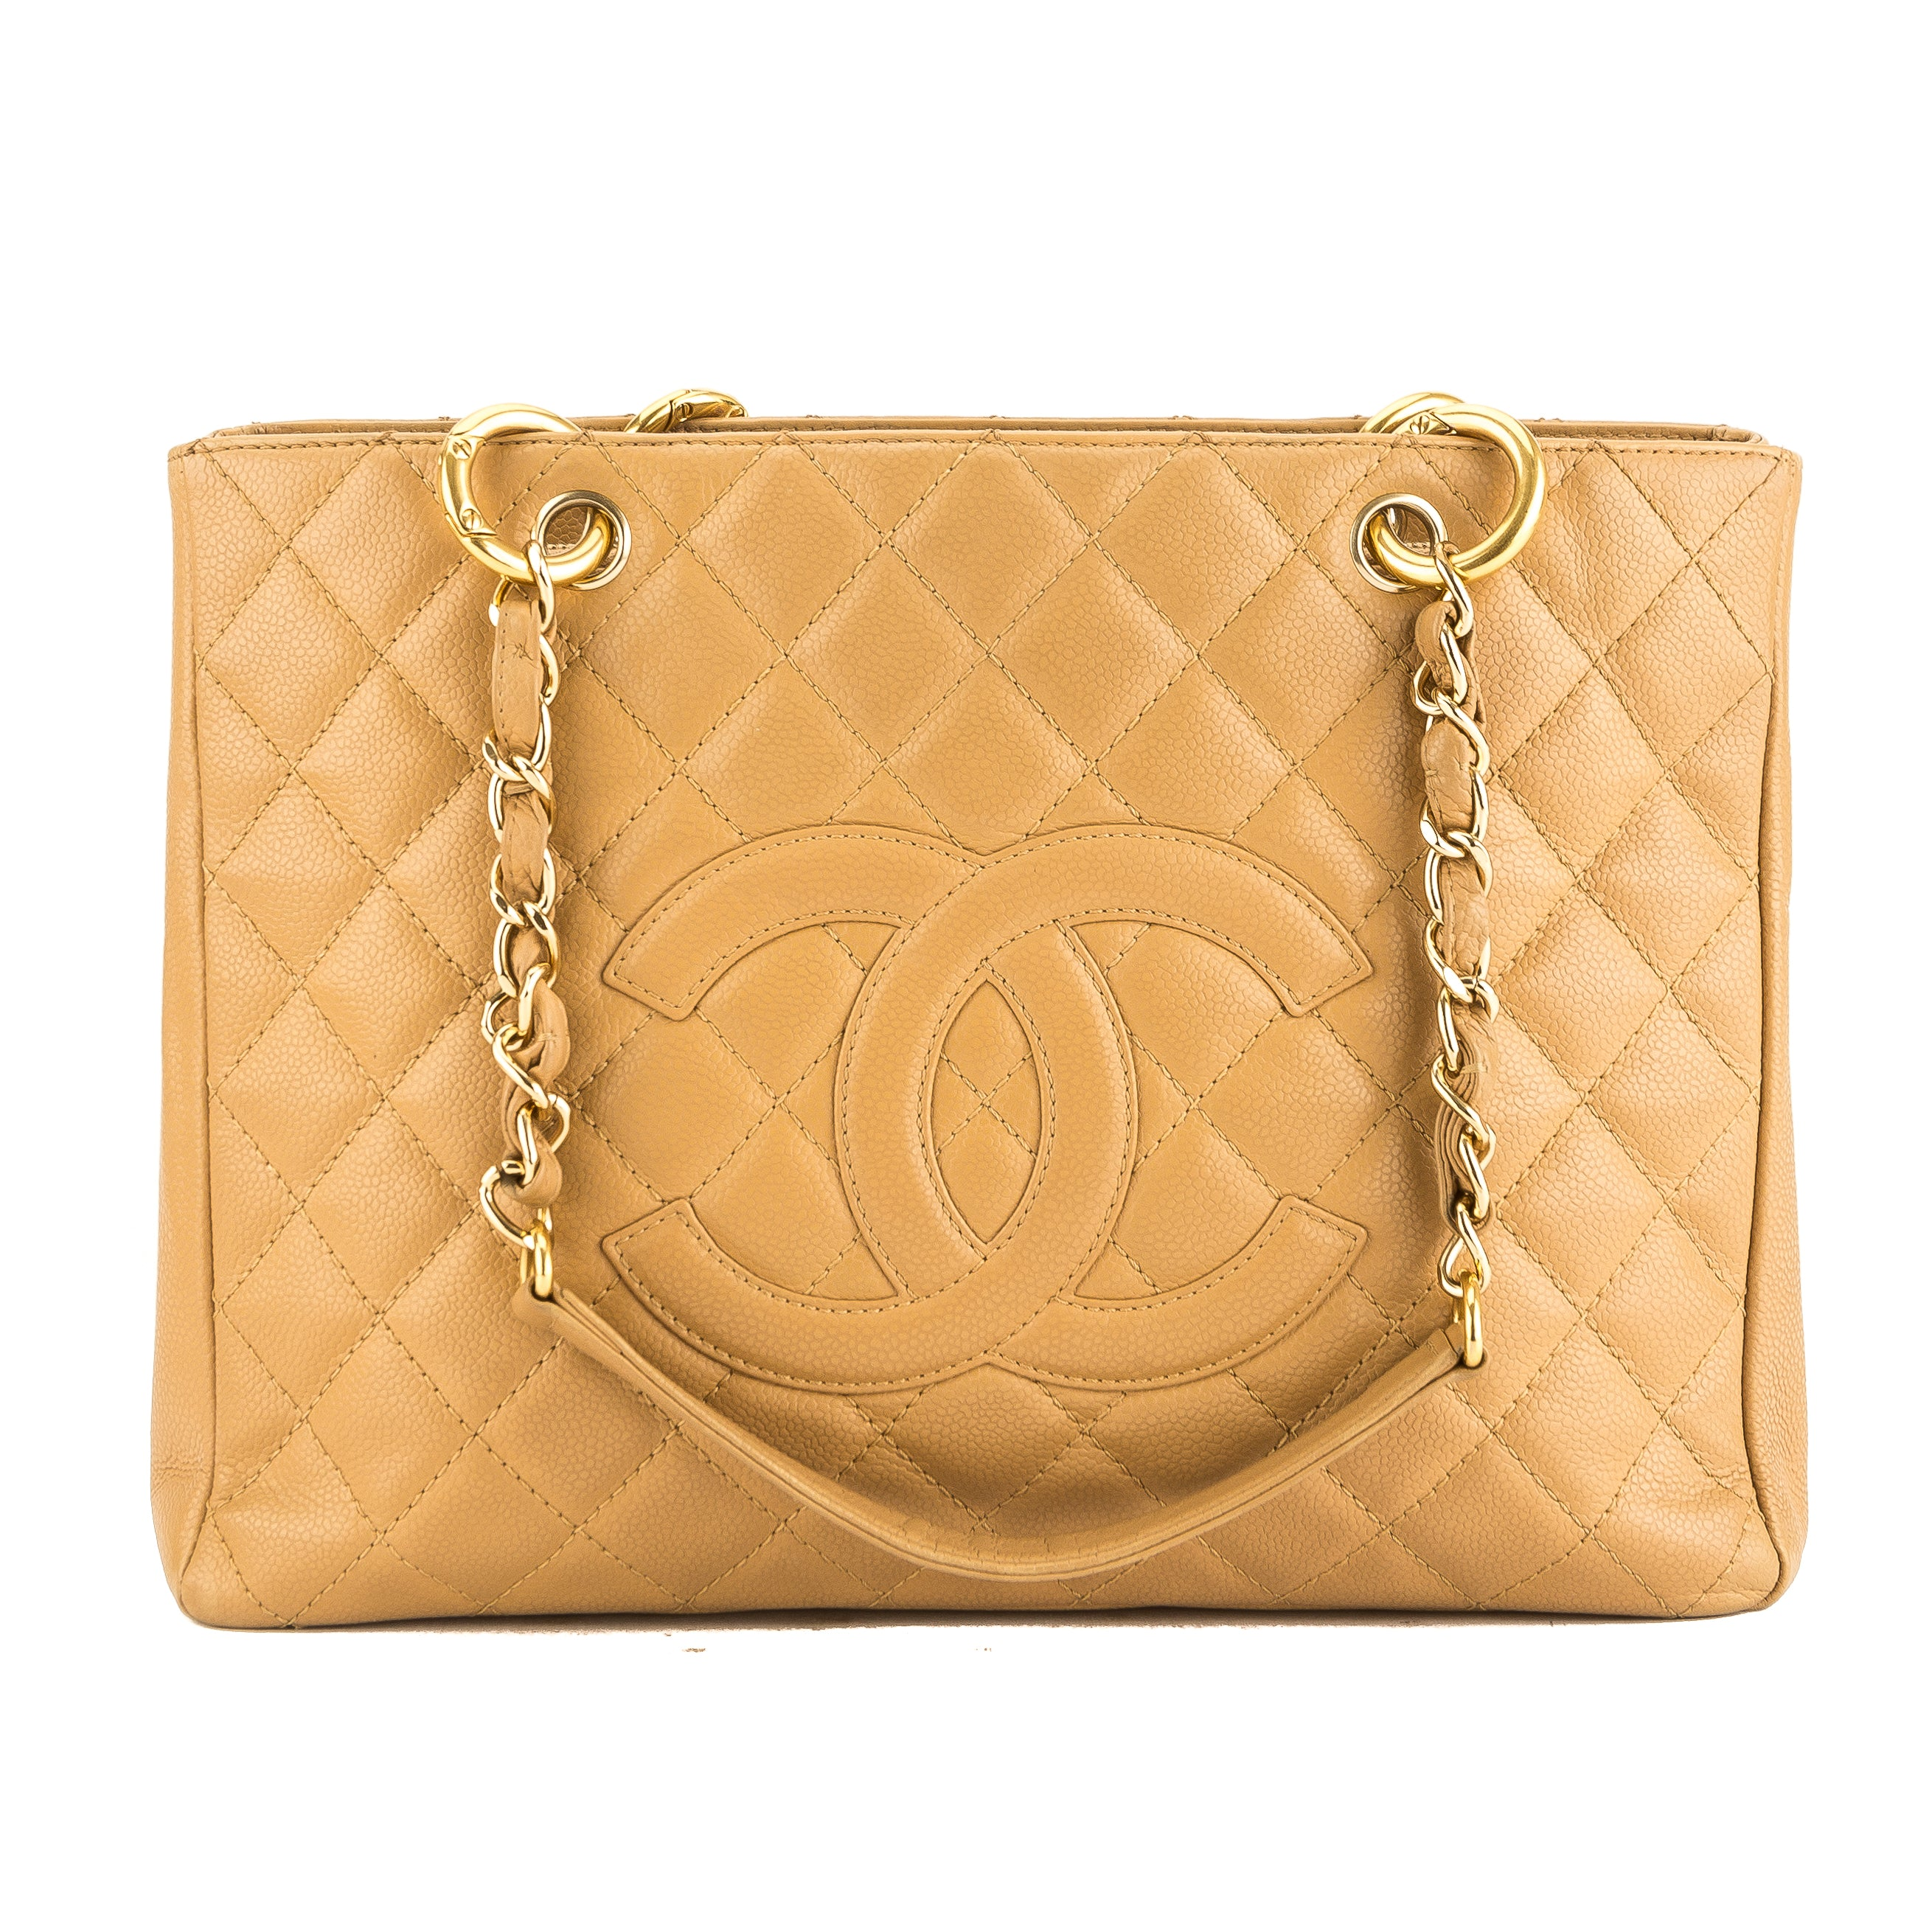 650336d6e1a5 Chanel Beige Quilted Caviar Leather Grand Shopping Tote GST Bag Pre Owned